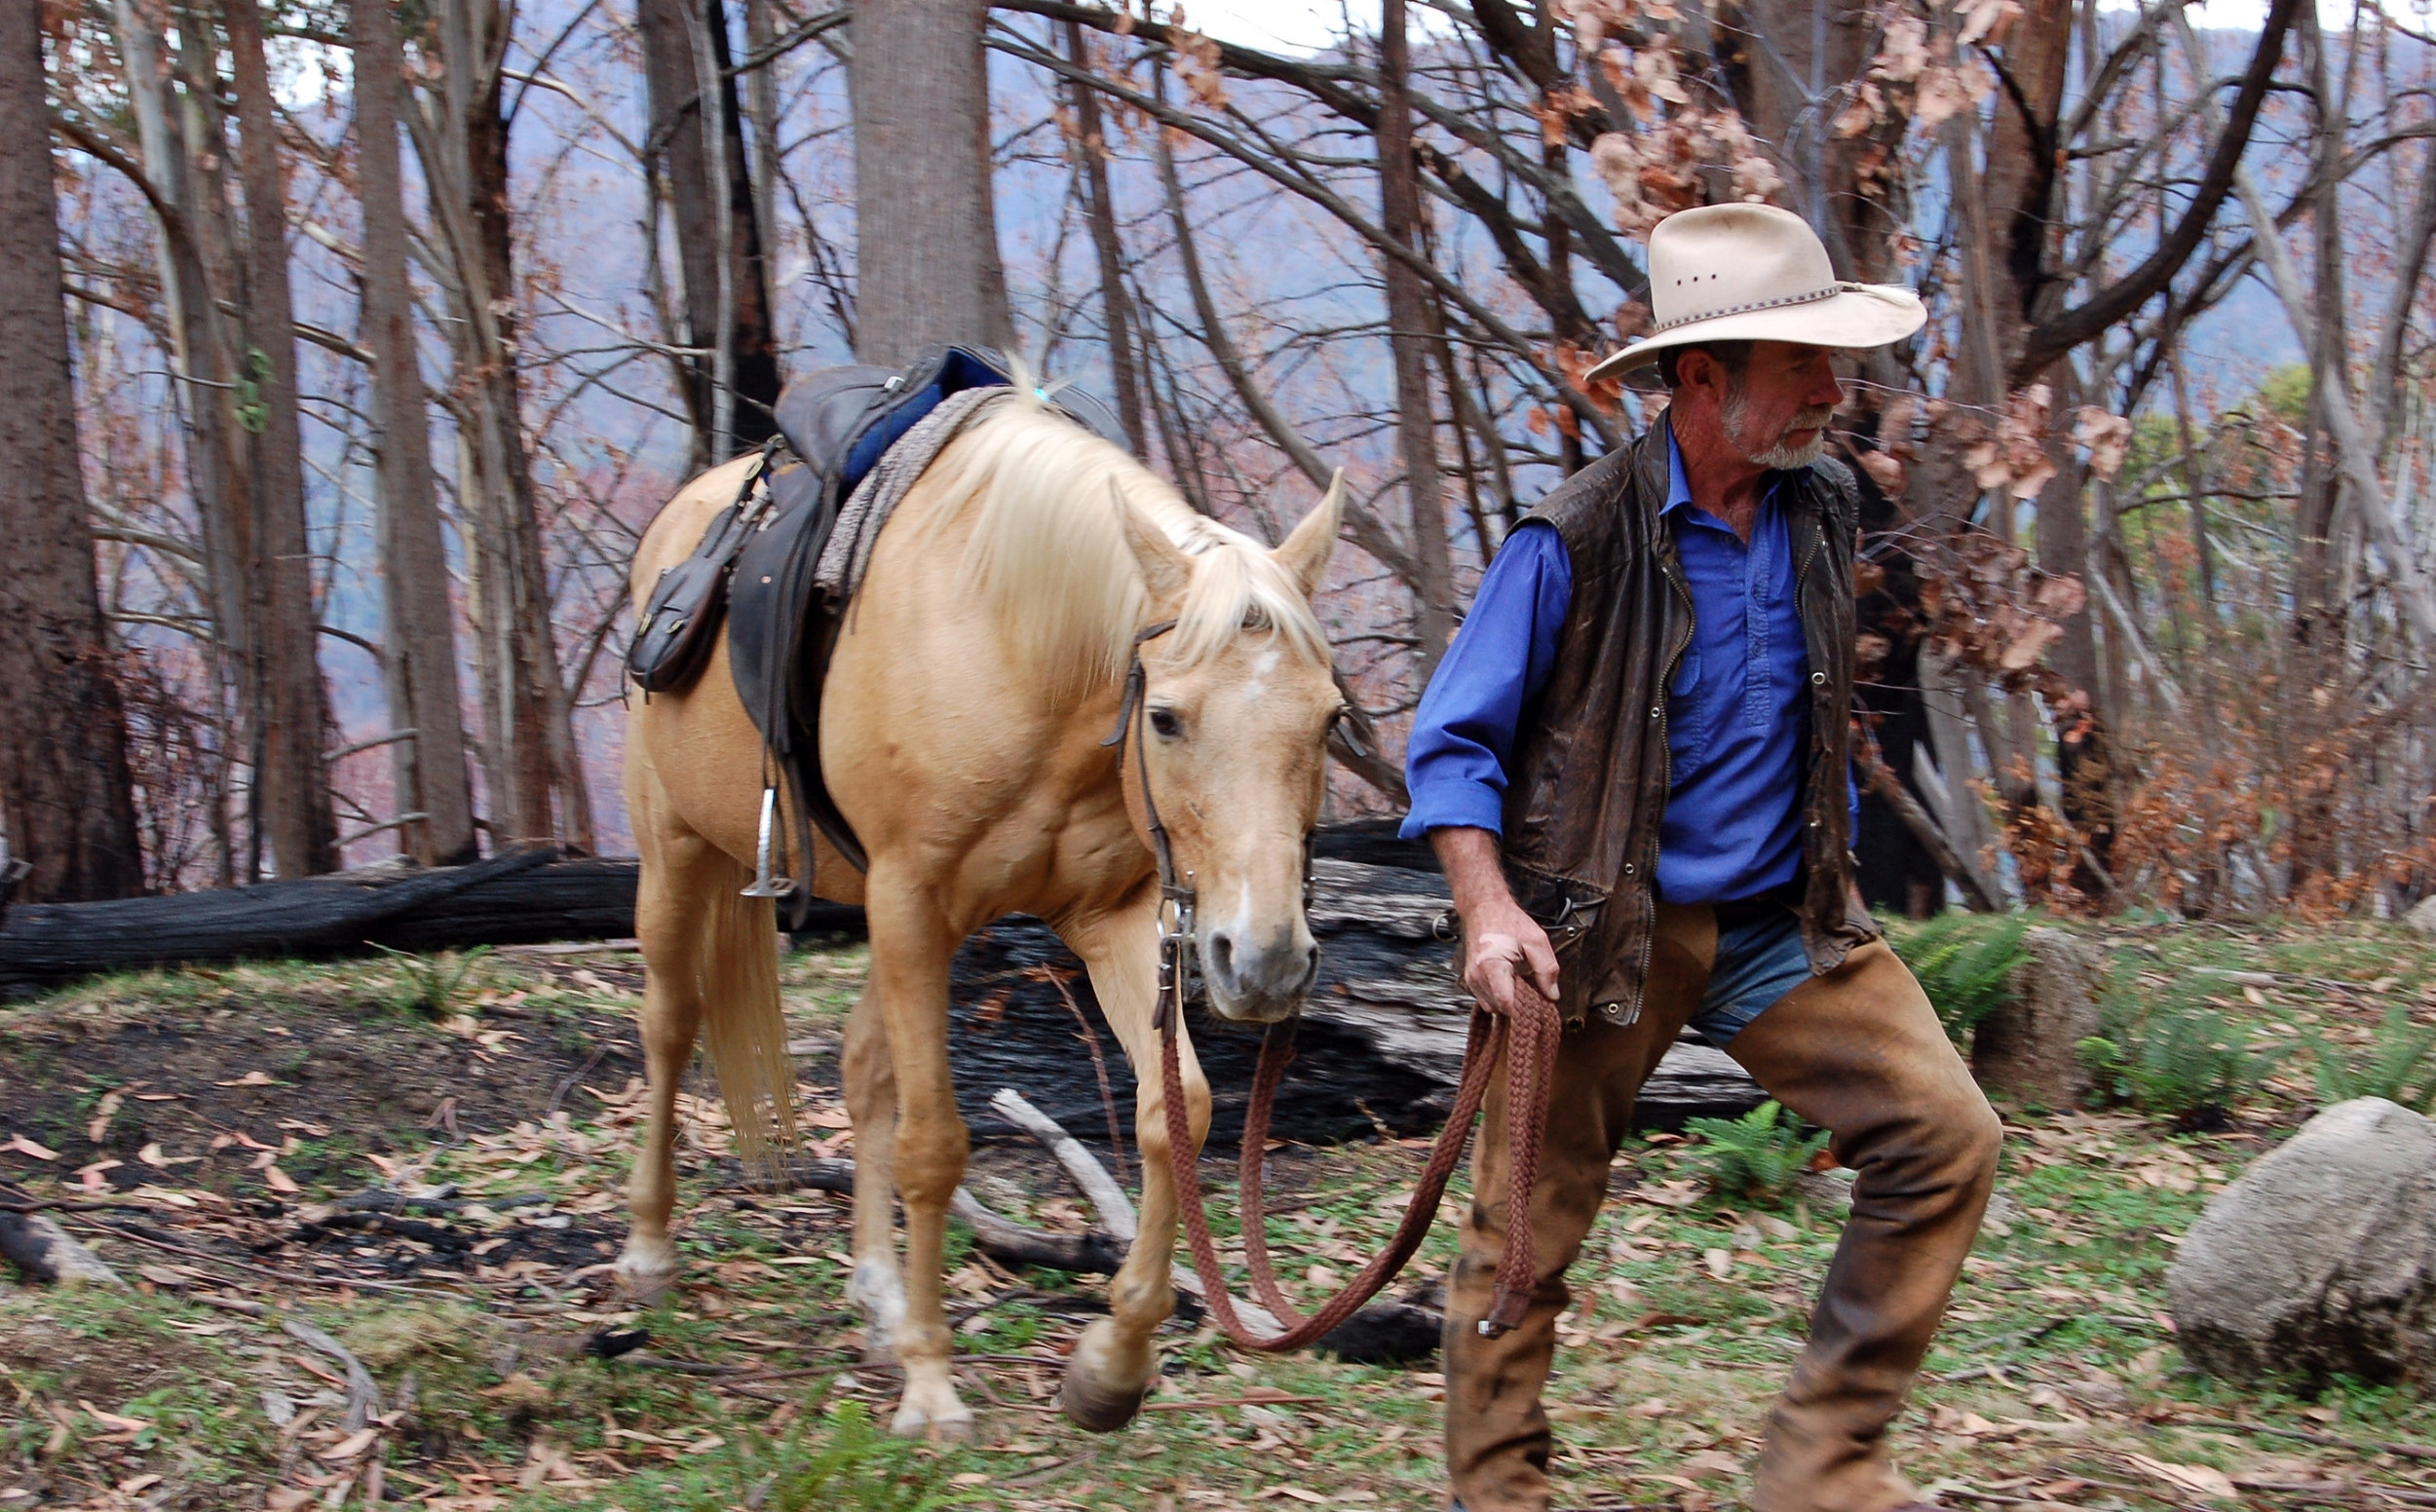 About HCH - High Country Horses is nestled in the foothills of Merrijig in North East Victoria; the gateway to the Victorian High Country.Owner/operators Chris and Fiona Dunlop have over 93 years of horse experience between them and have a passion for the high country and the integrity of the environment in which they are privileged to operate.  They take great pride in their horses and in sharing the magic of the mountains with everyone that rides with them.Our horses are tried and true mountain horses, as honest as the day is long.  We have horses to suit every level of rider and the flexibility to adjust the ride according to your ability.  Our tour guides are professional horseman and women with a sound knowledge of the environment as well as good knowledge of local folklore.Our aim is to provide an adventure that takes in as much of the magnificent high country as we can ensuring our guest have a memorable, but most importantly, a safe experience.Back to the top